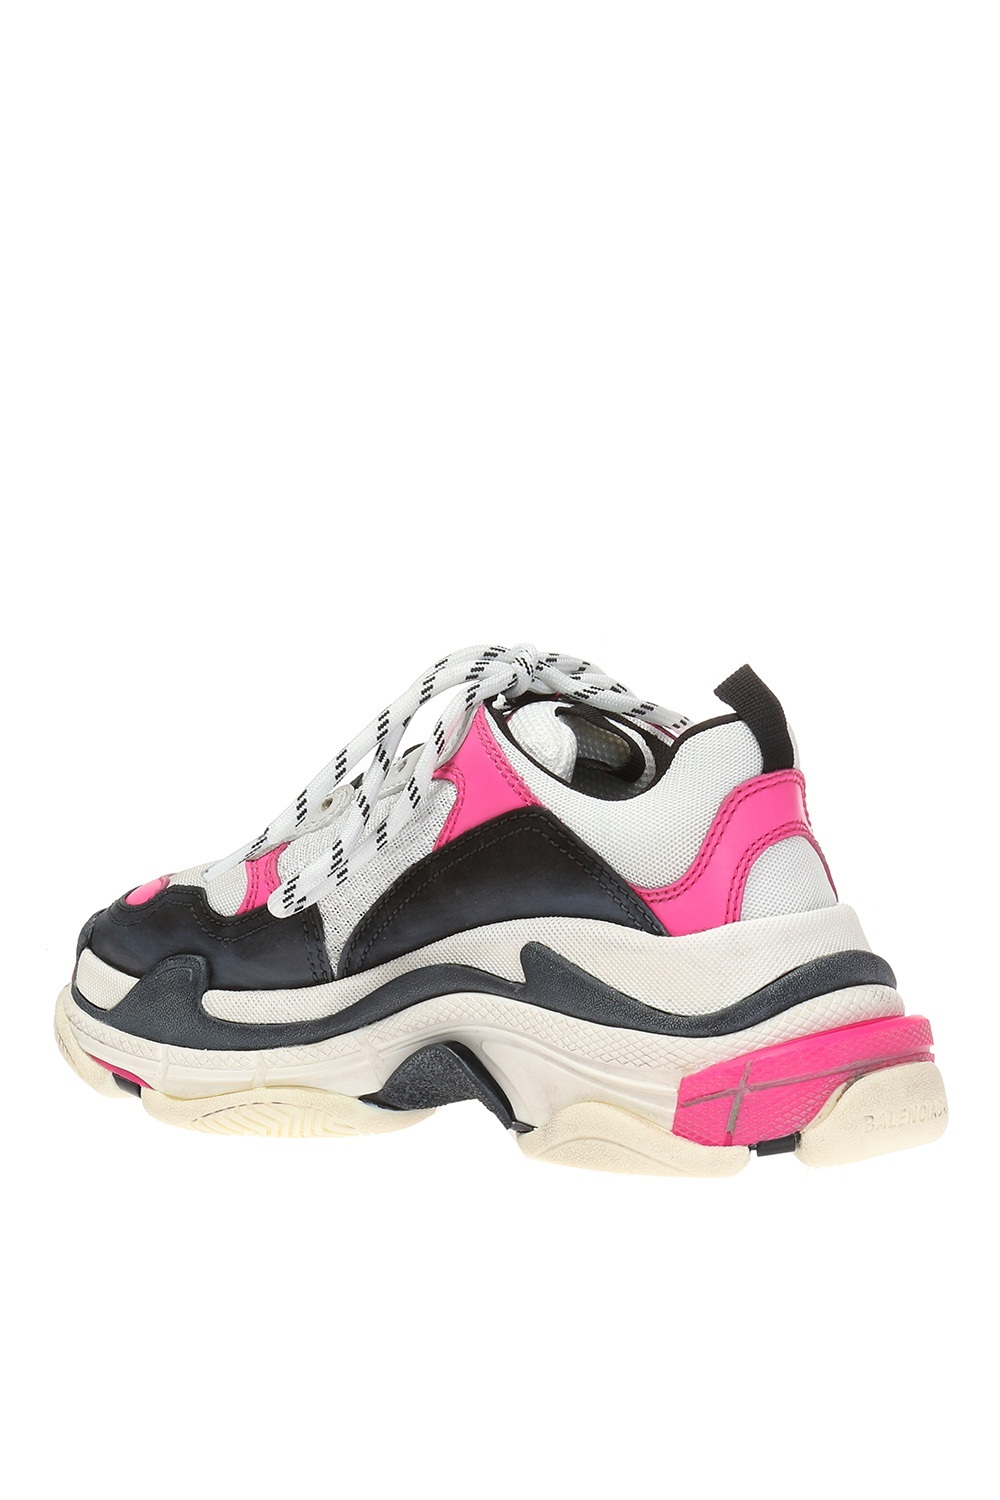 Balenciaga Sneakers with logo